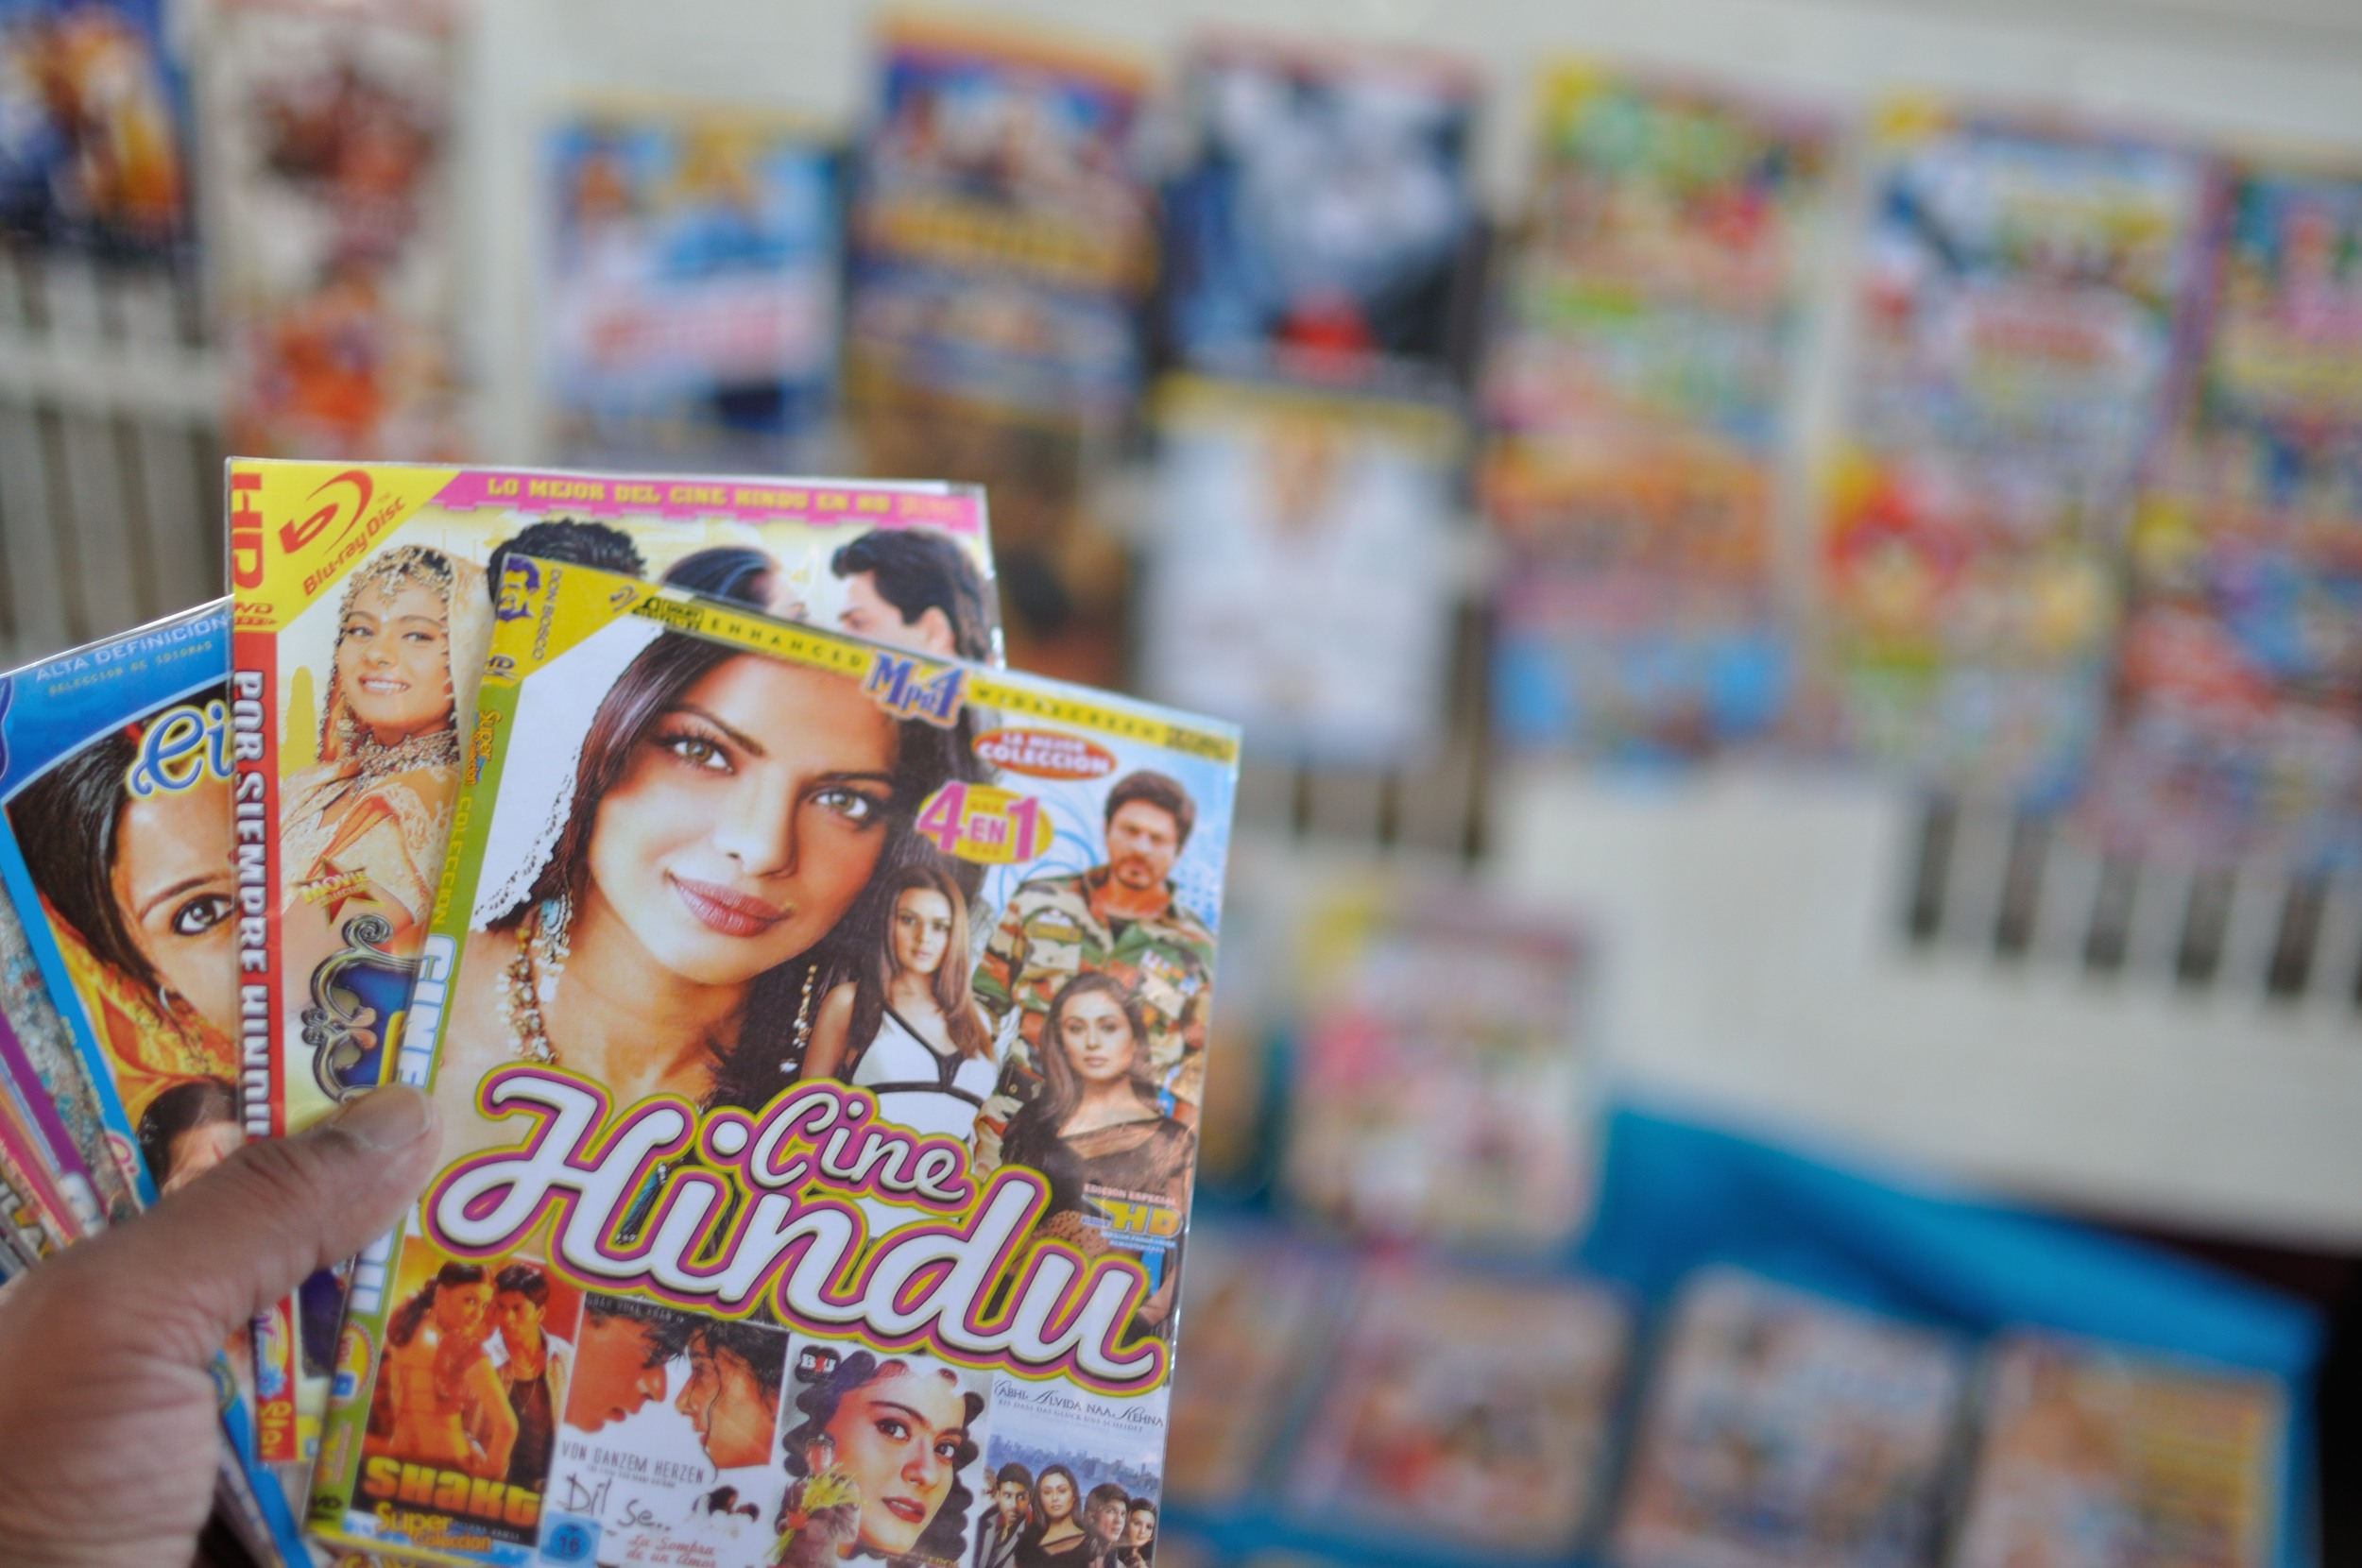 We even found some Bollywood movie DVDs - Cine Hindu as they call in Peru :)